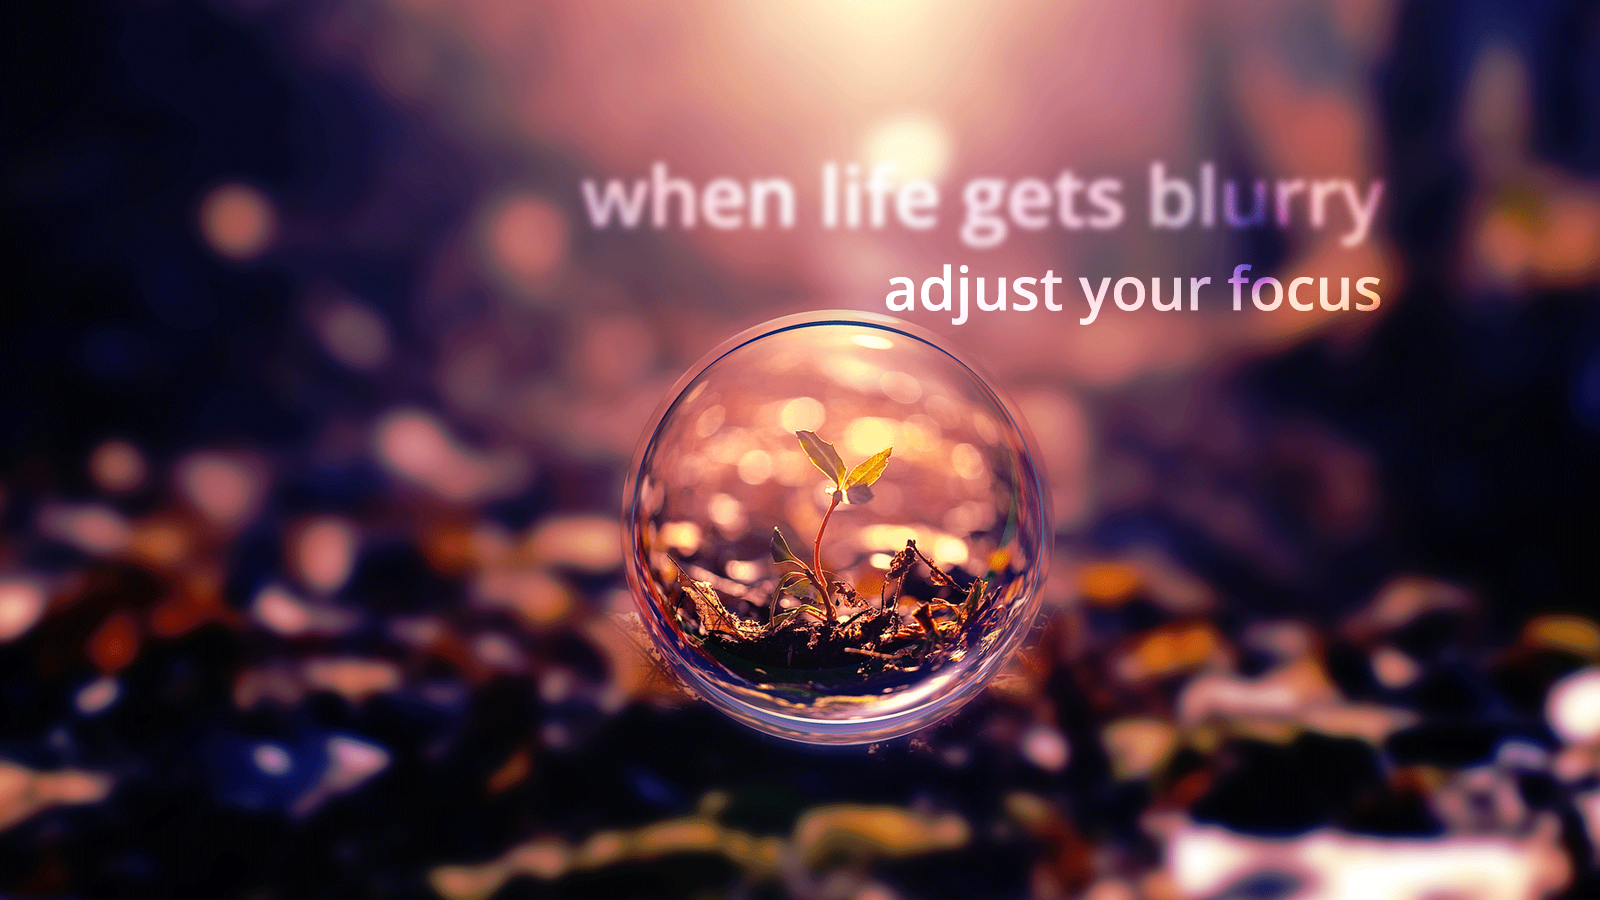 Cute Trendy Wallpapers Quotes When Life Gets Blurry Adjust Your Focus Focus Life